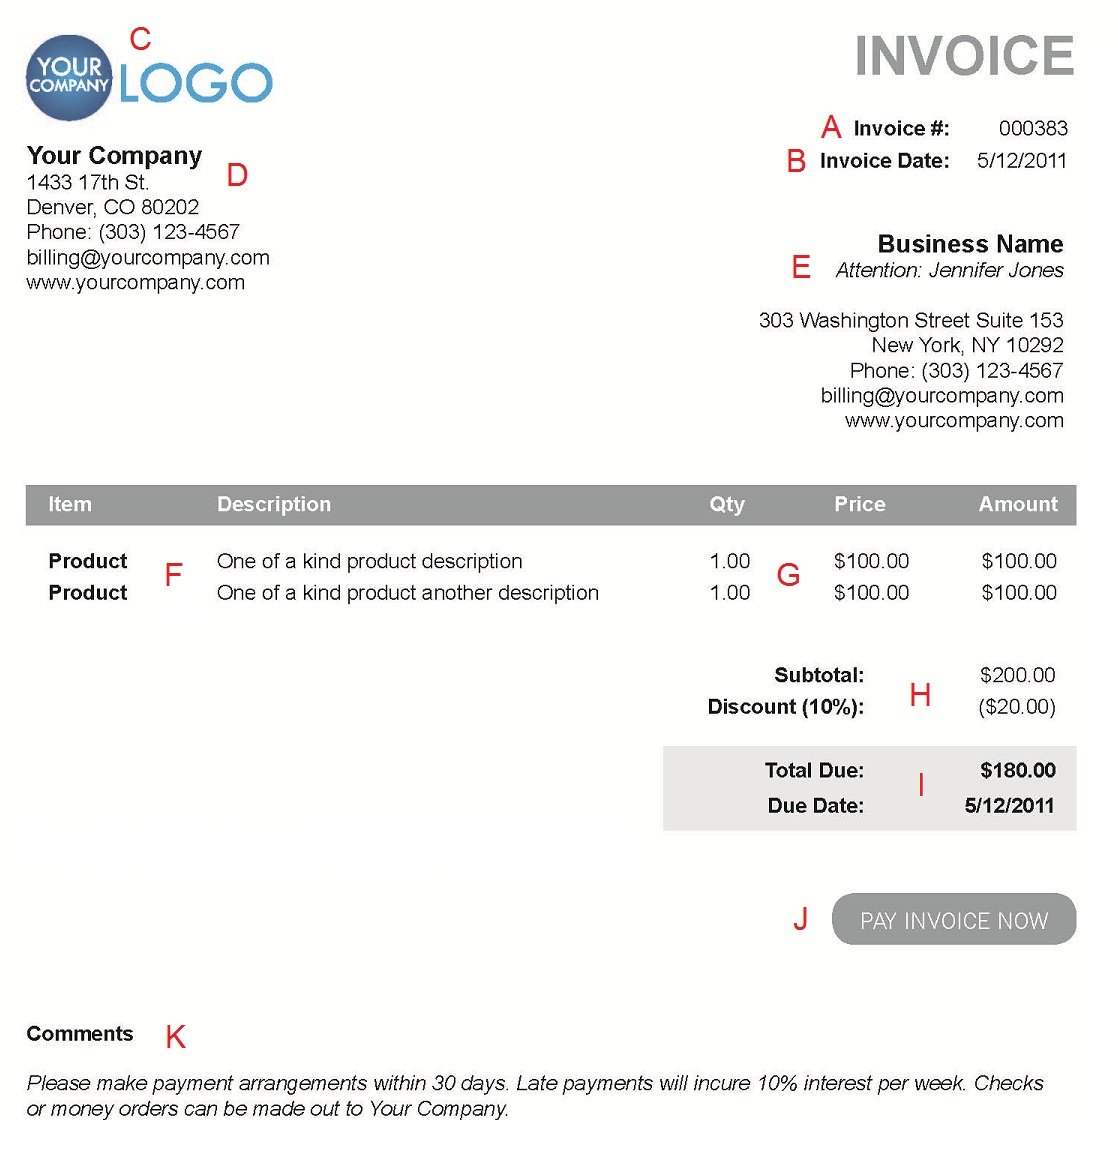 Coolmathgamesus  Pretty The  Different Sections Of An Electronic Payment Invoice With Entrancing A  With Beauteous Receipt Letter Template Also Receive Receipt In Addition Hummus Receipt And Receipt Printer Paper Size As Well As Free Receipts Online Additionally Payment Receipt Format In Word From Paysimplecom With Coolmathgamesus  Entrancing The  Different Sections Of An Electronic Payment Invoice With Beauteous A  And Pretty Receipt Letter Template Also Receive Receipt In Addition Hummus Receipt From Paysimplecom